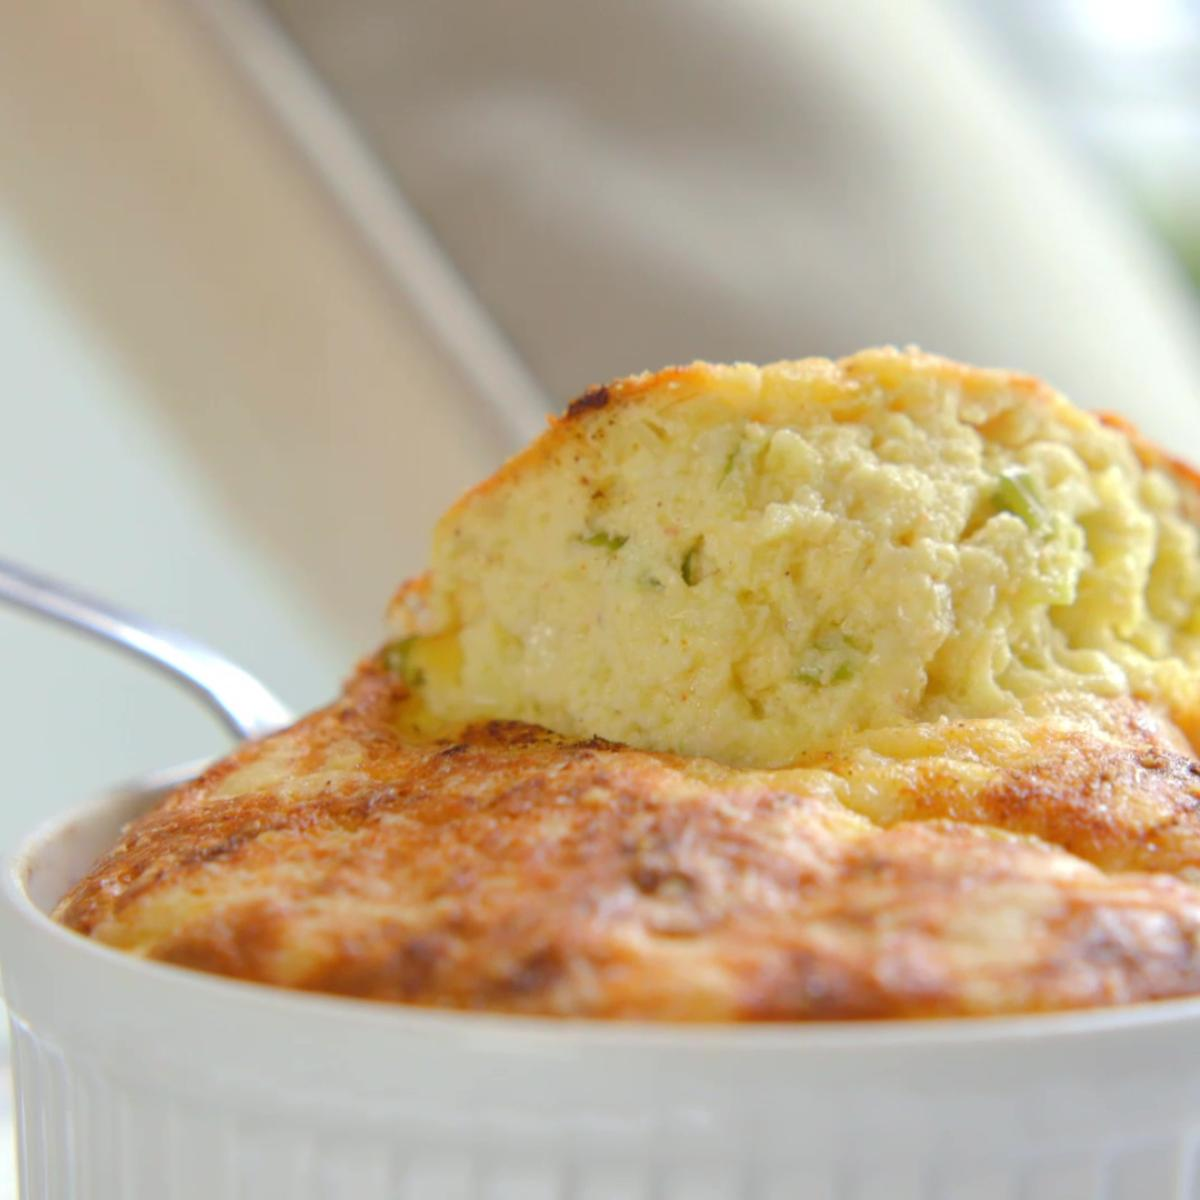 A picture of Delia's Potato, Cheese and Spring Onion Souffle recipe